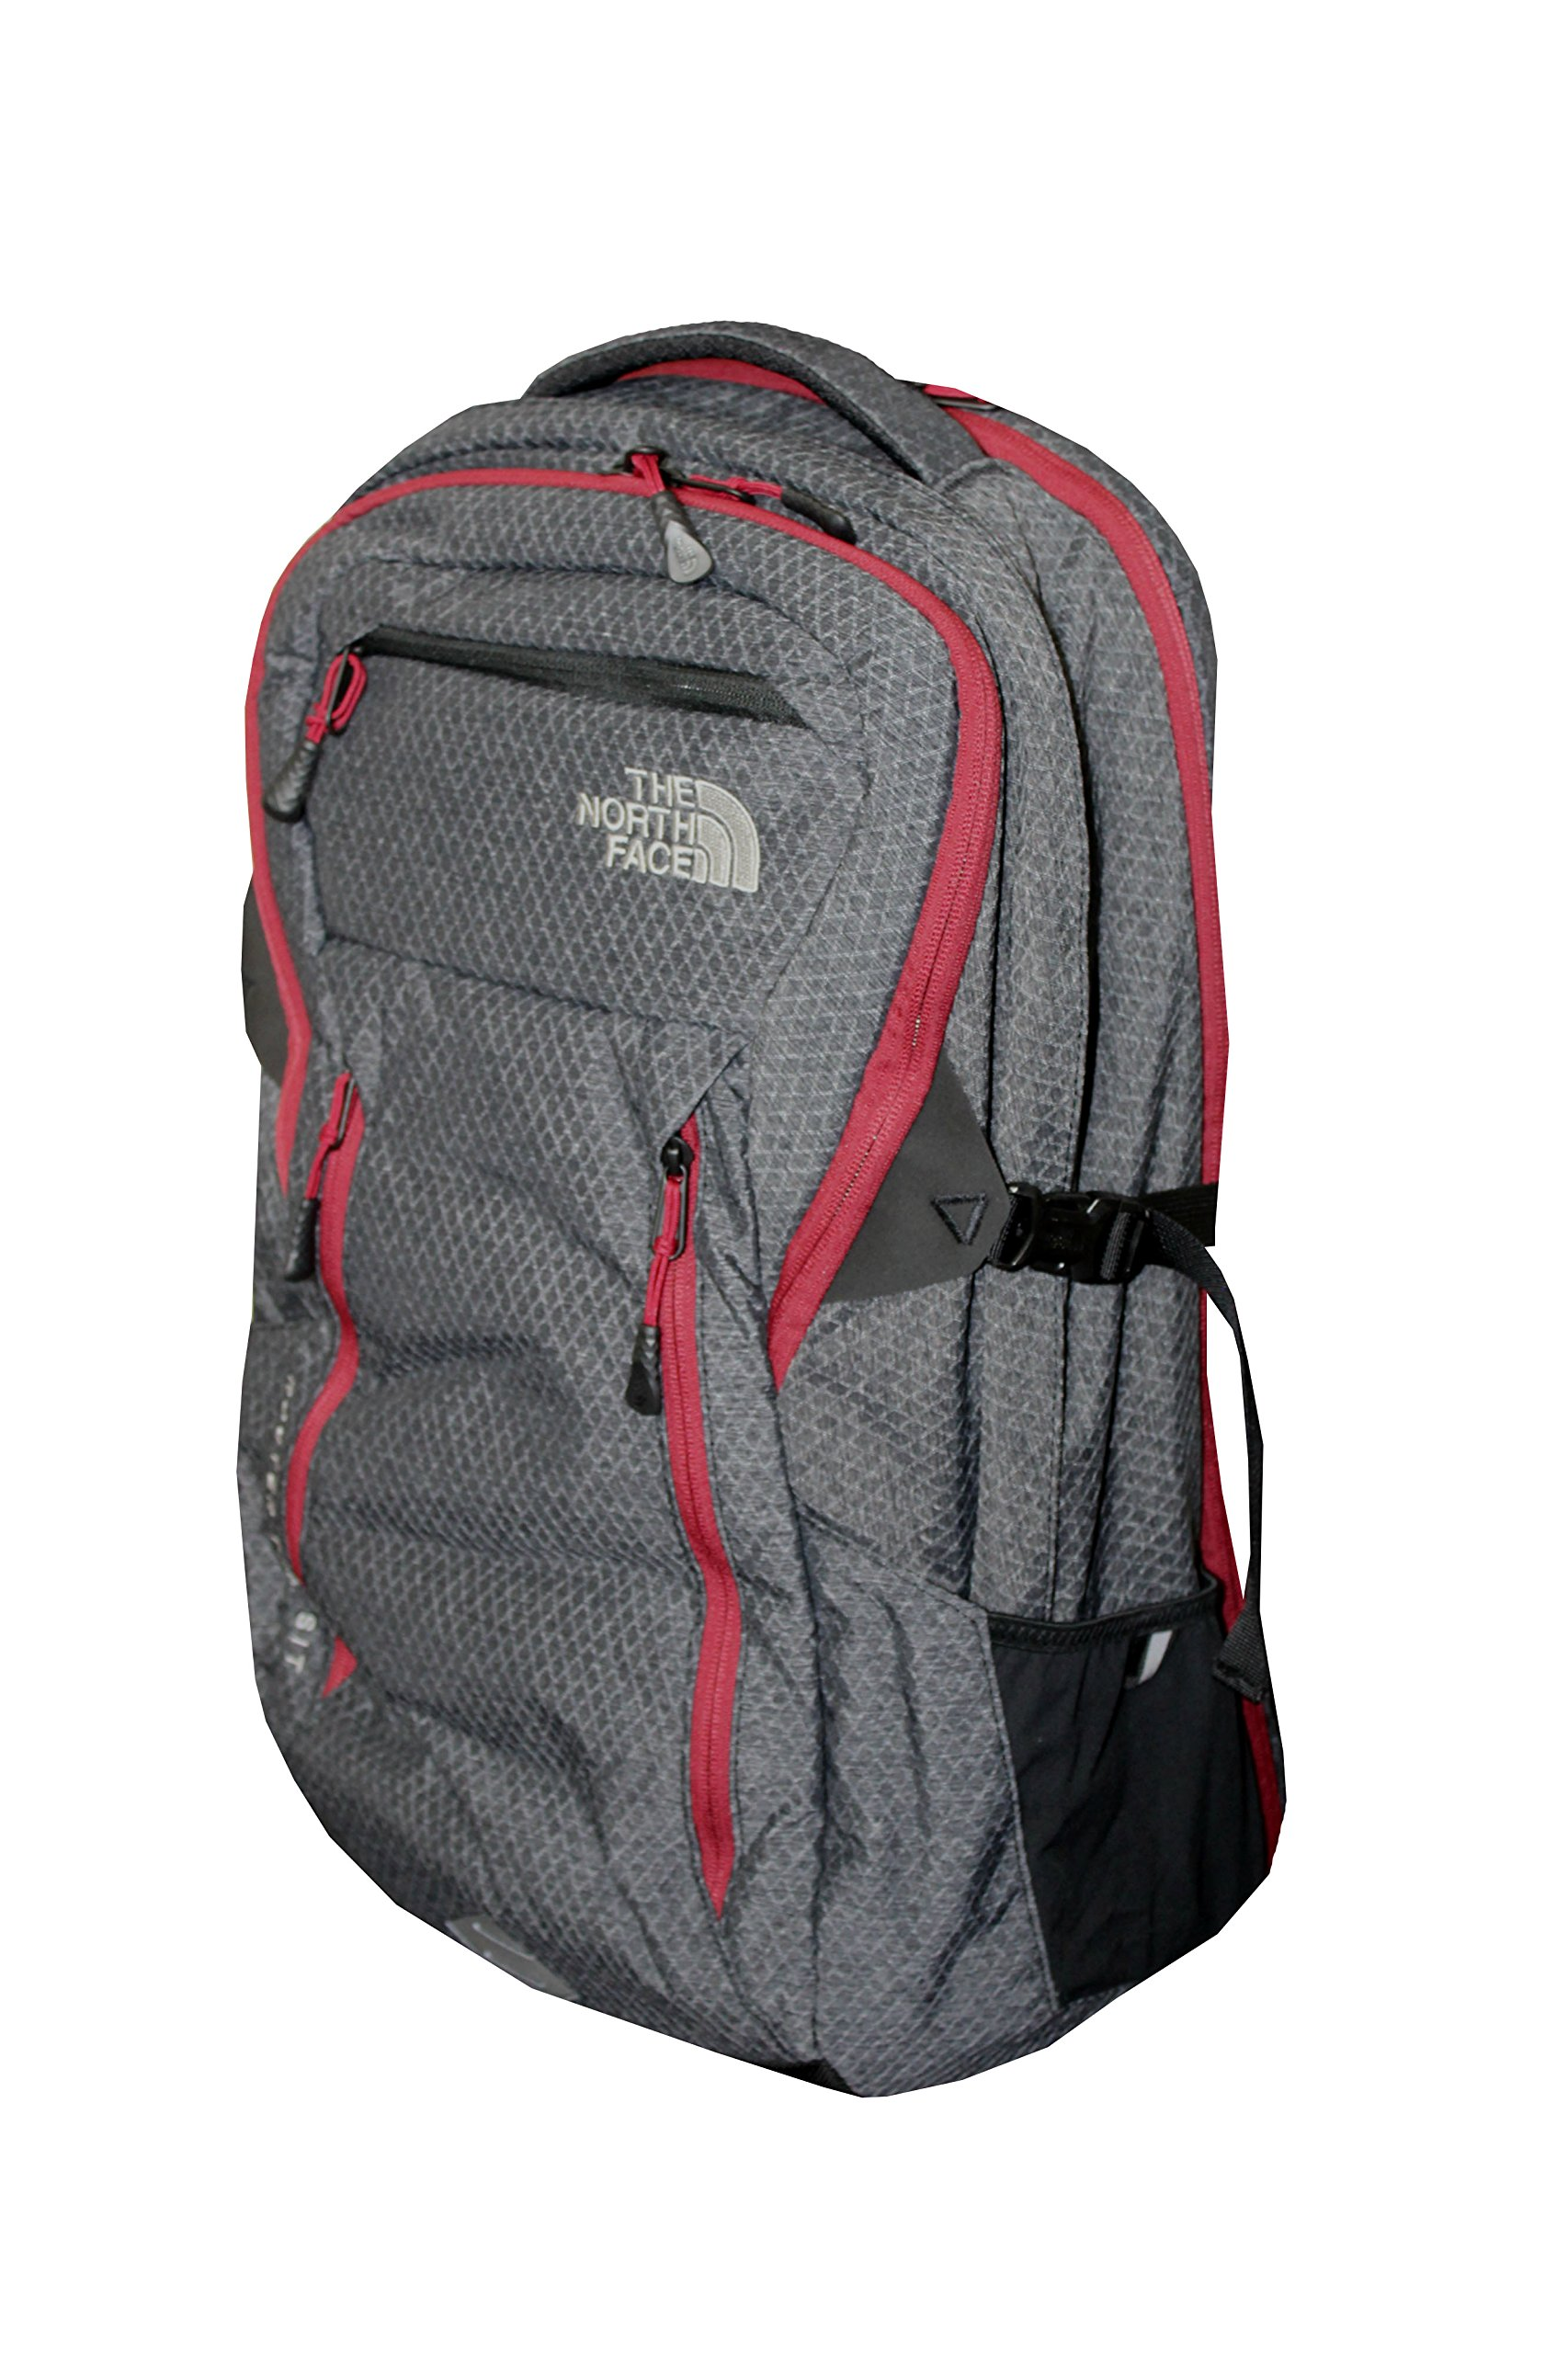 The North Face Router Transit Men's Backpack Student School Bag